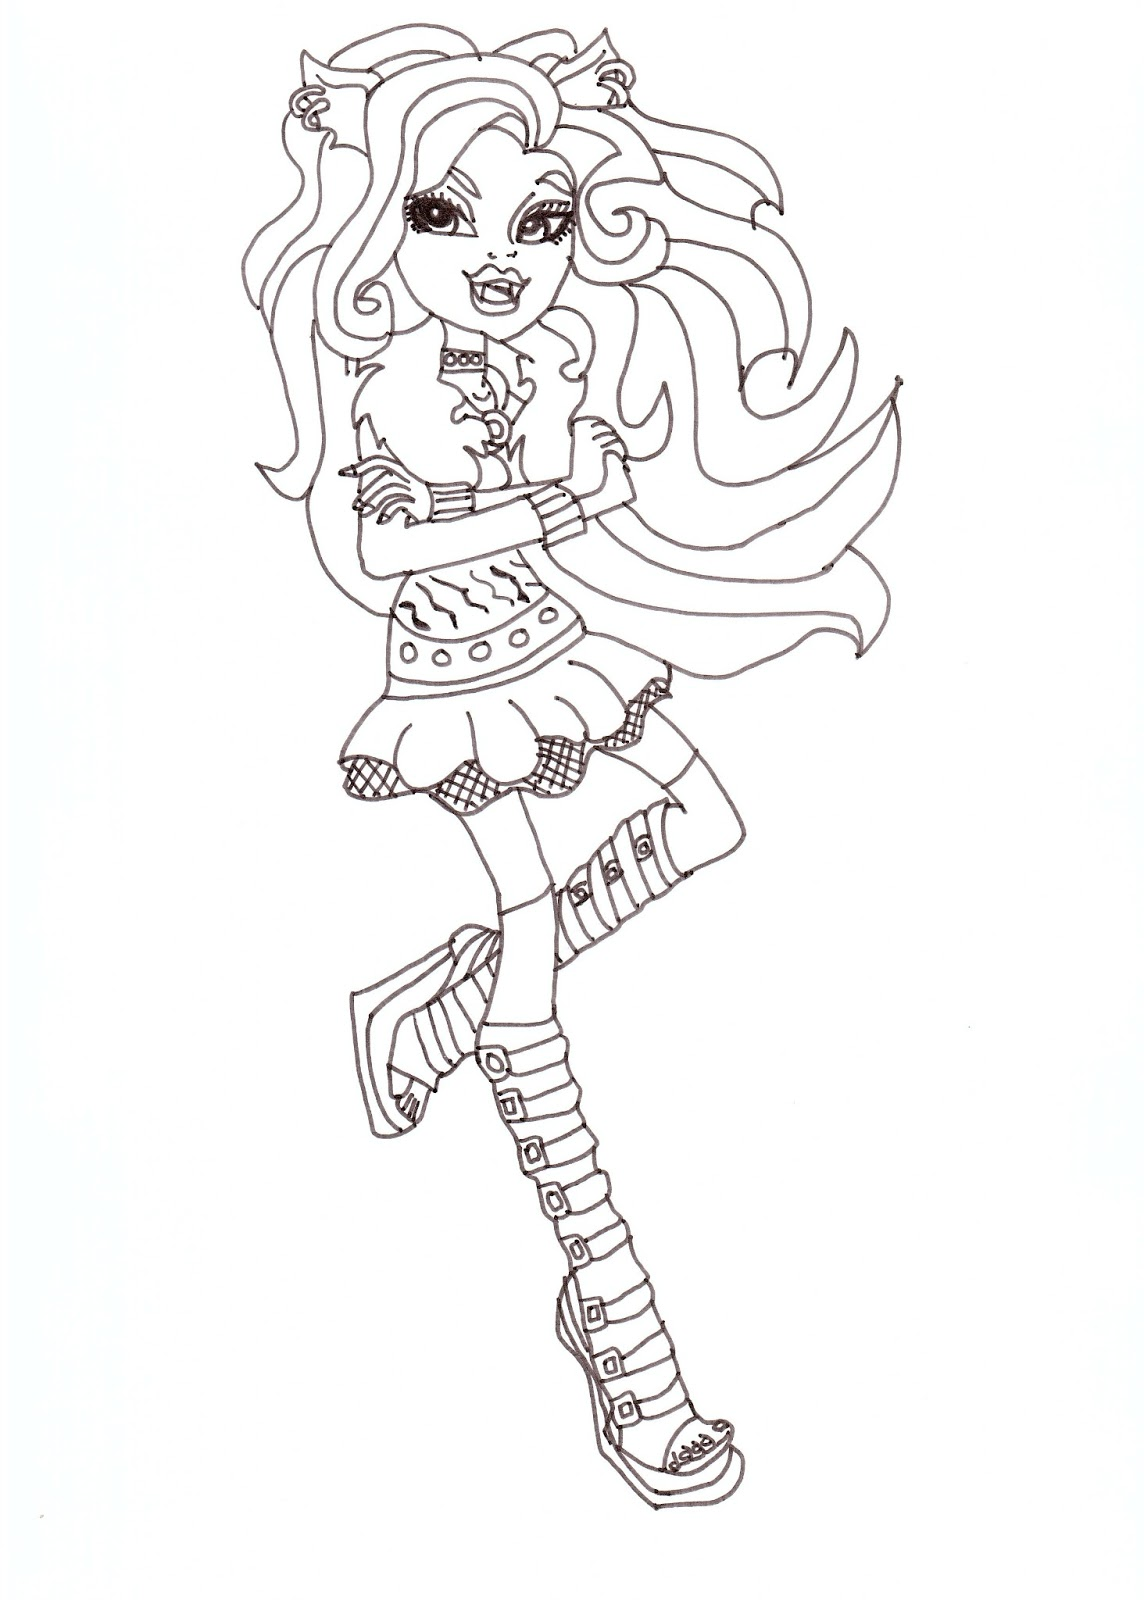 Free Printable Monster High Coloring Pages: Clawdeen